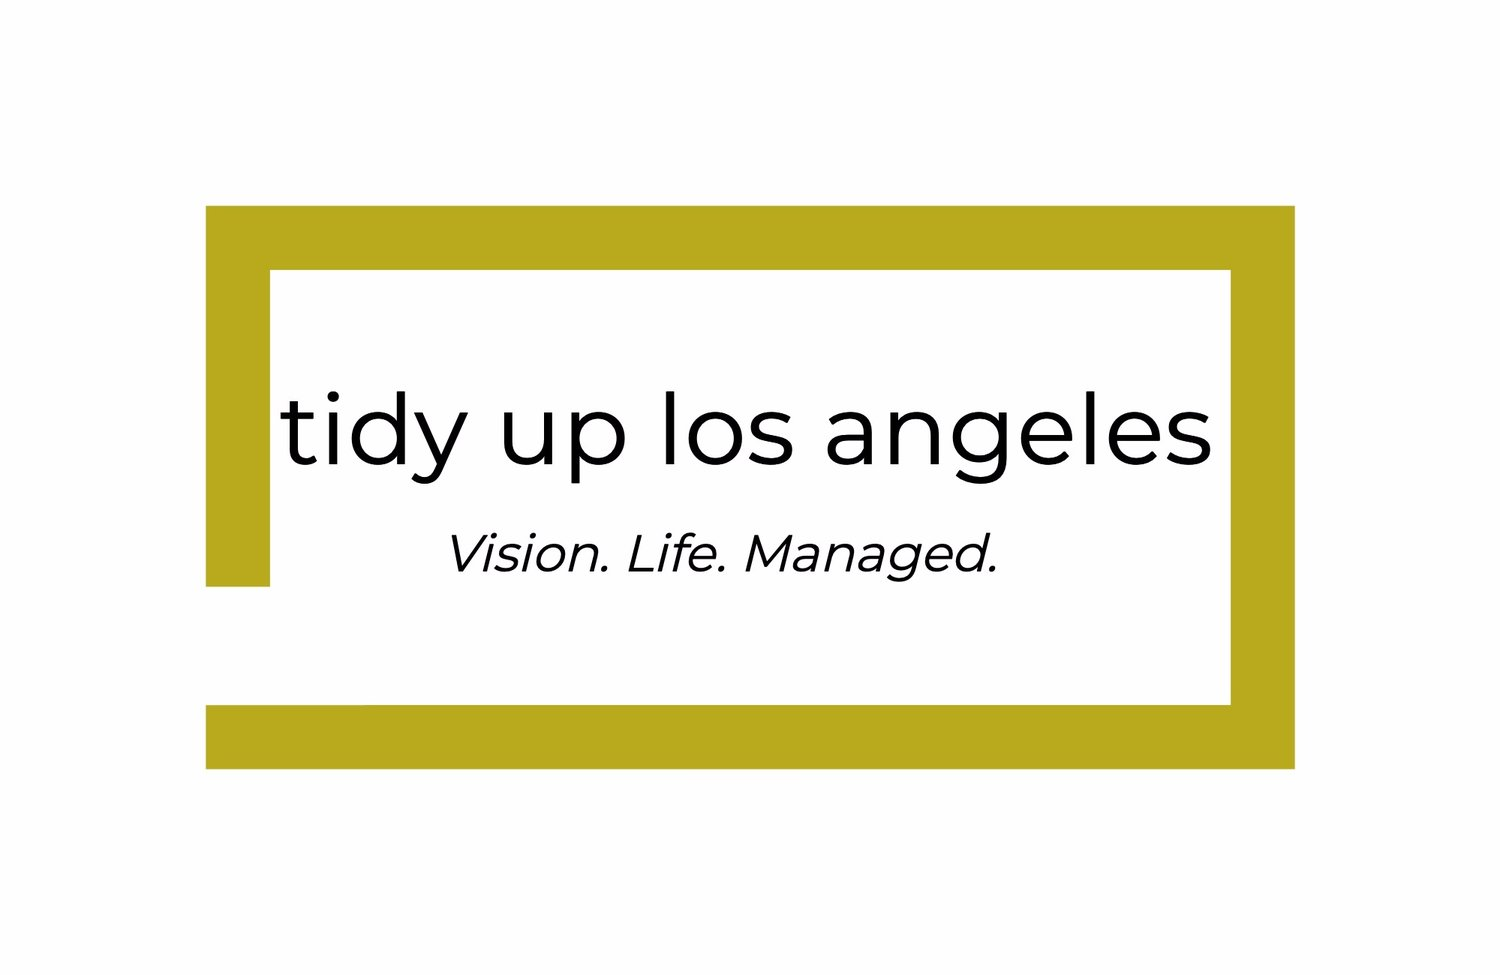 Tidy Up Los Angeles